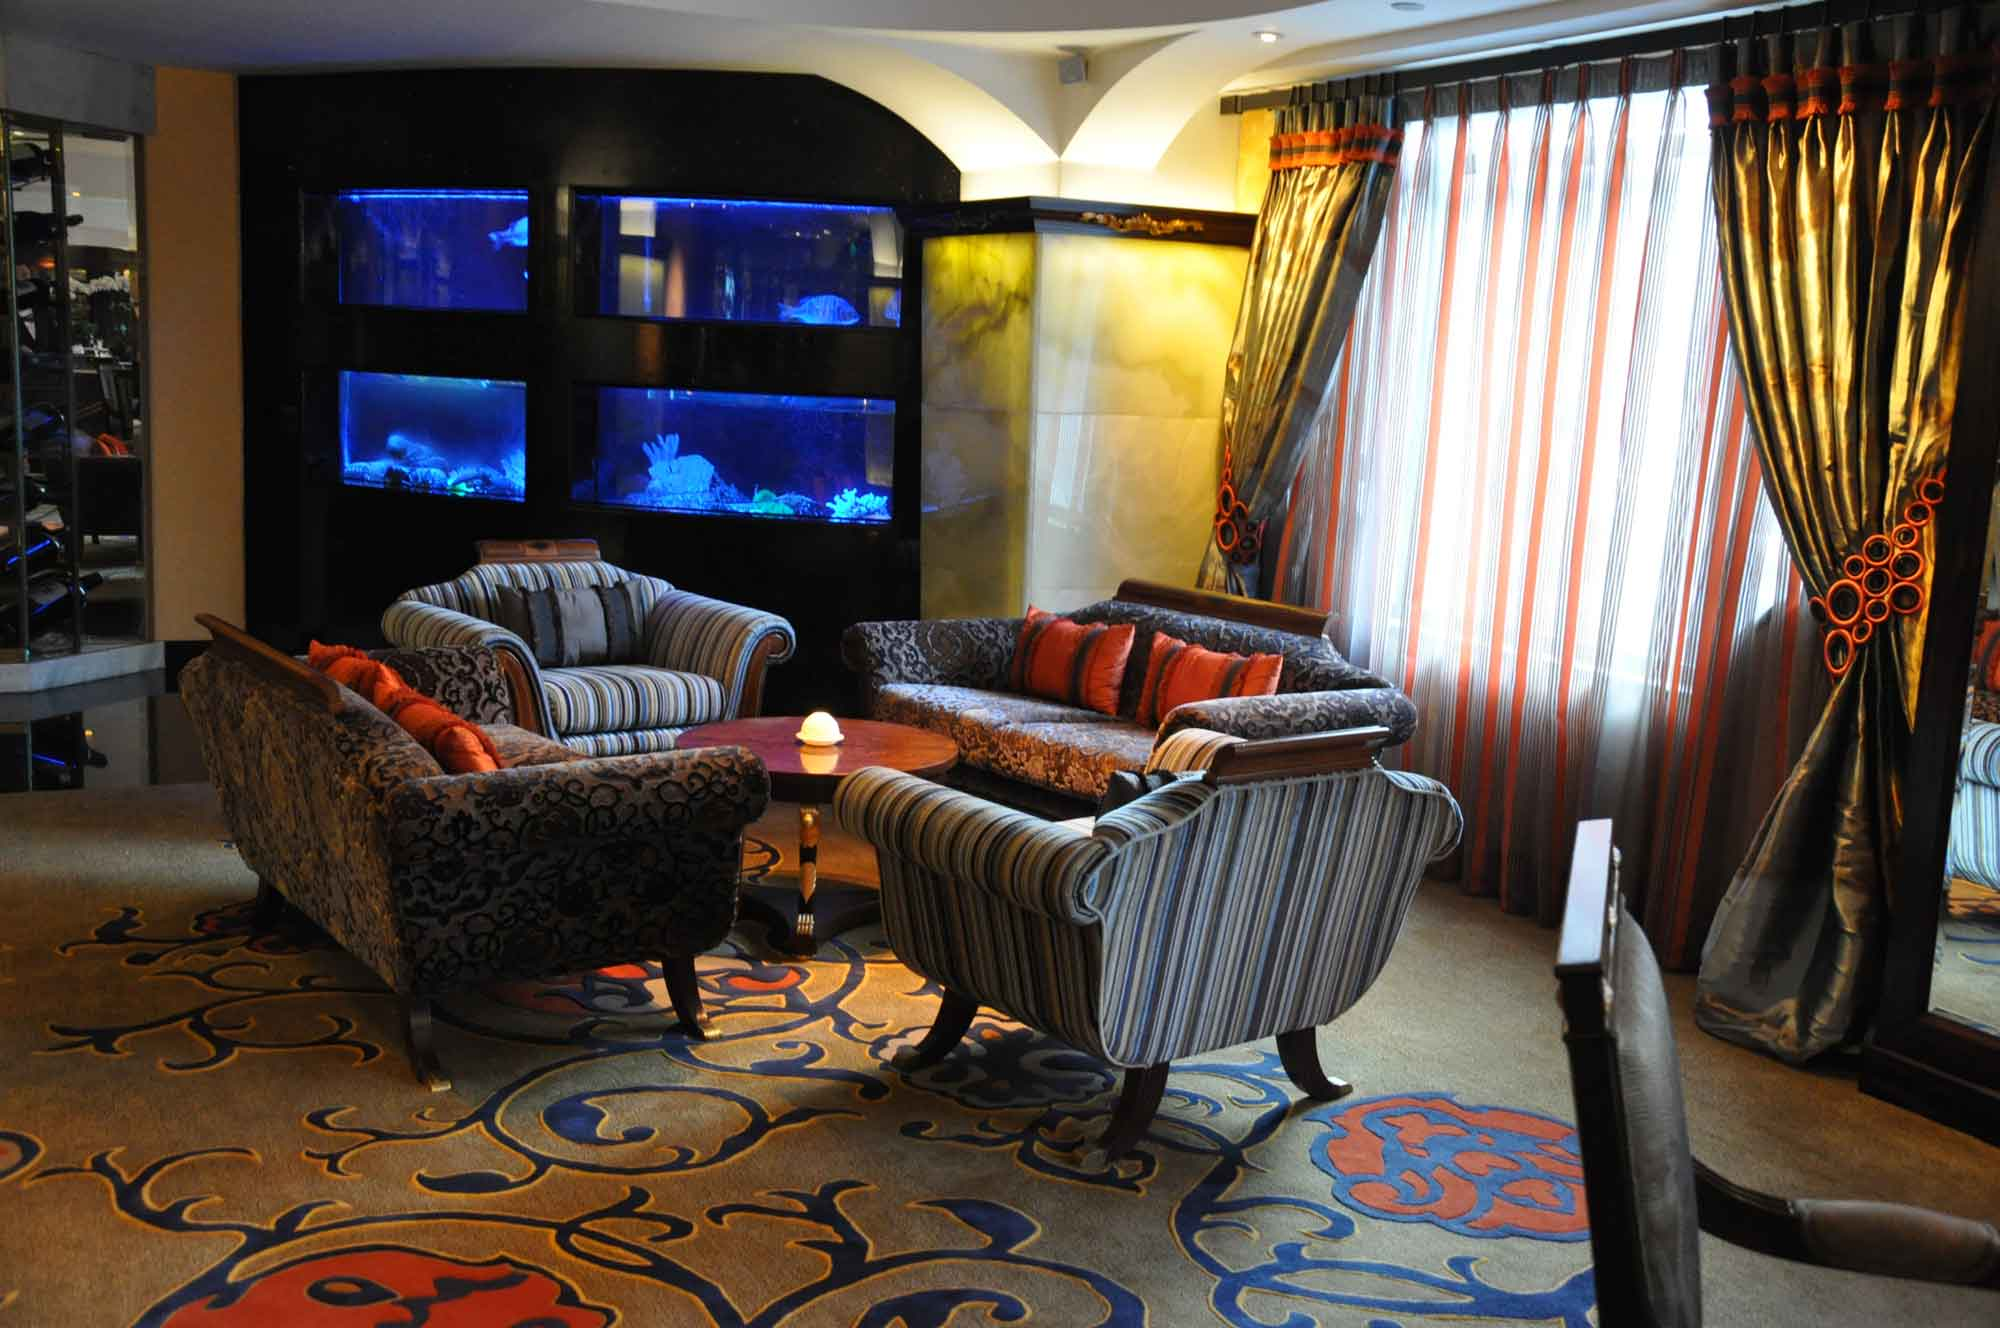 Guincho A Galera Macau lounge section with fish tanks